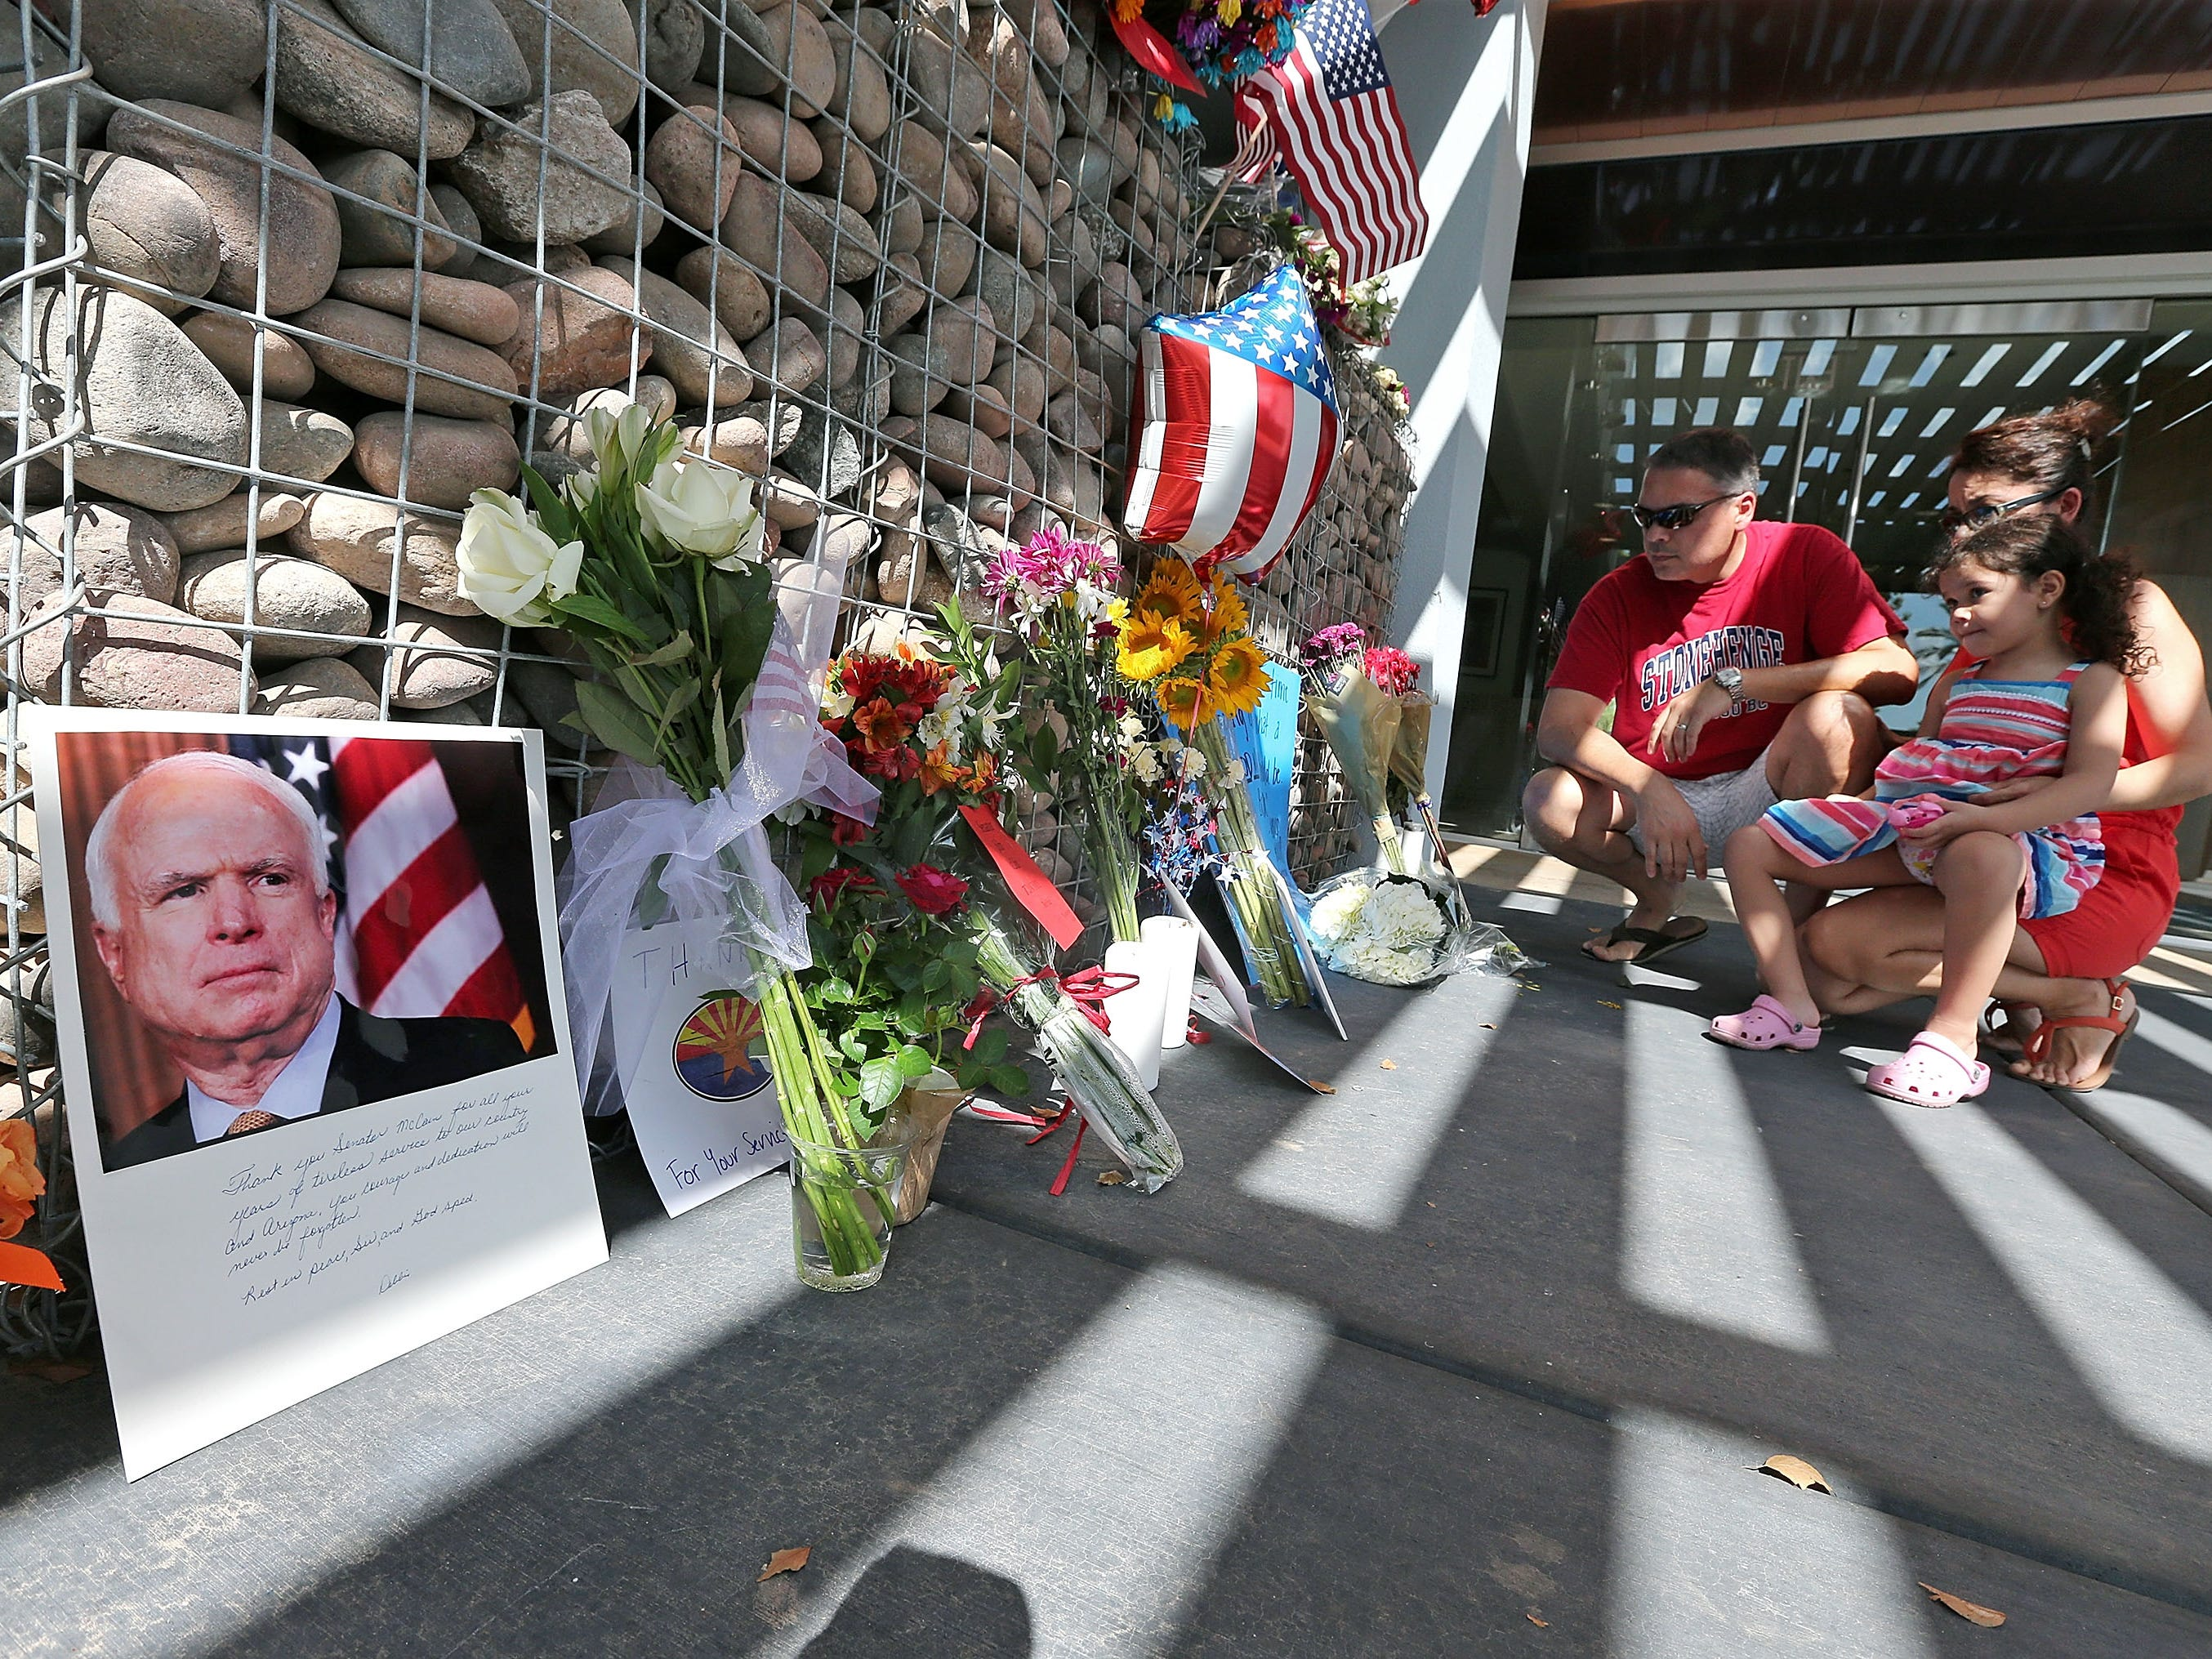 A family kneels down and place flowers at a small memorial to pay their respects to the late Sen. John McCain outside his office on Aug. 26, 2018 in Phoenix, Ariz.